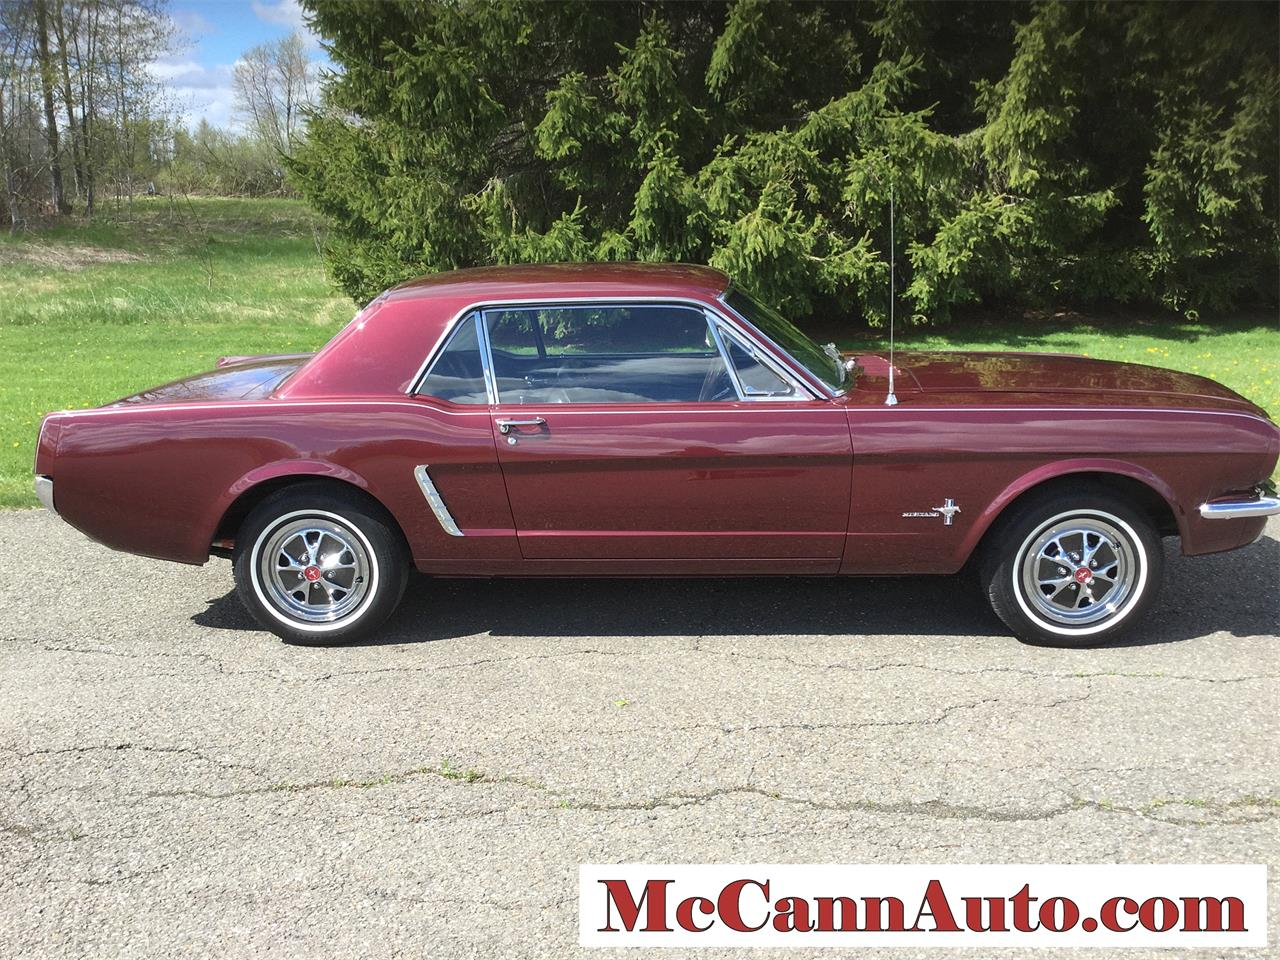 Large Picture of '65 Mustang located in Maine - $14,995.00 Offered by a Private Seller - J8WB